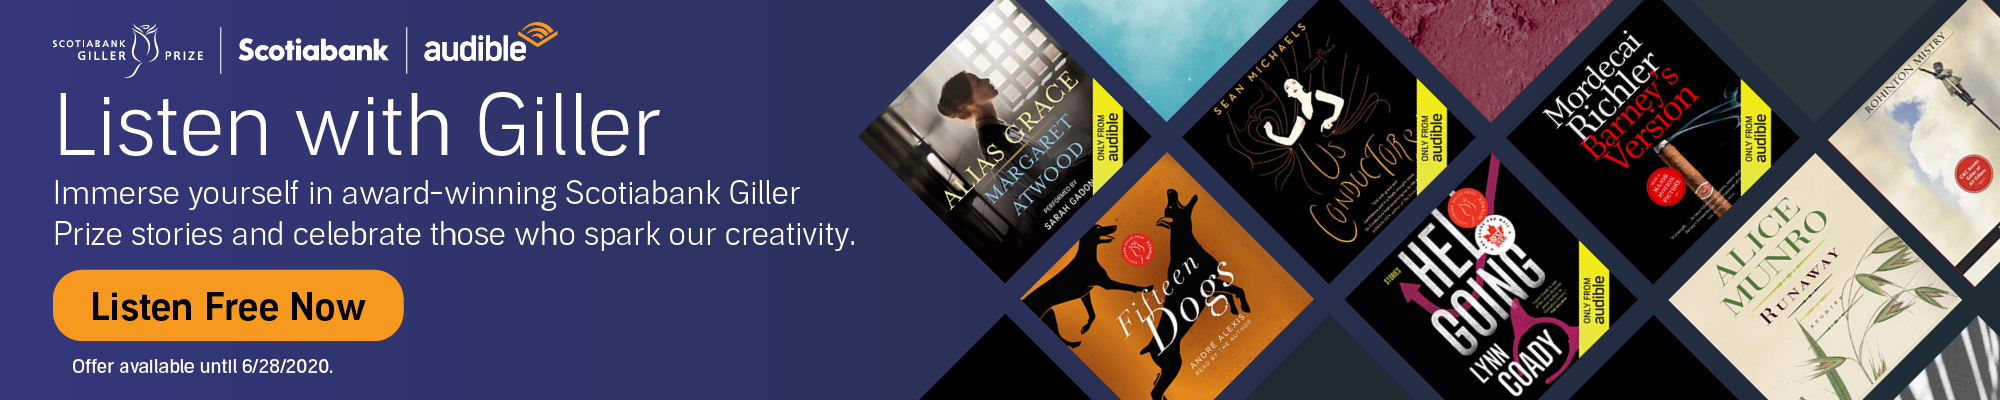 Listen with Giller - Immerse yourself in award-winning Scotiabank Giller Prize stories and celebrate those who spark our creativity. Offer available until 6/28/2020. Listen Free Now >